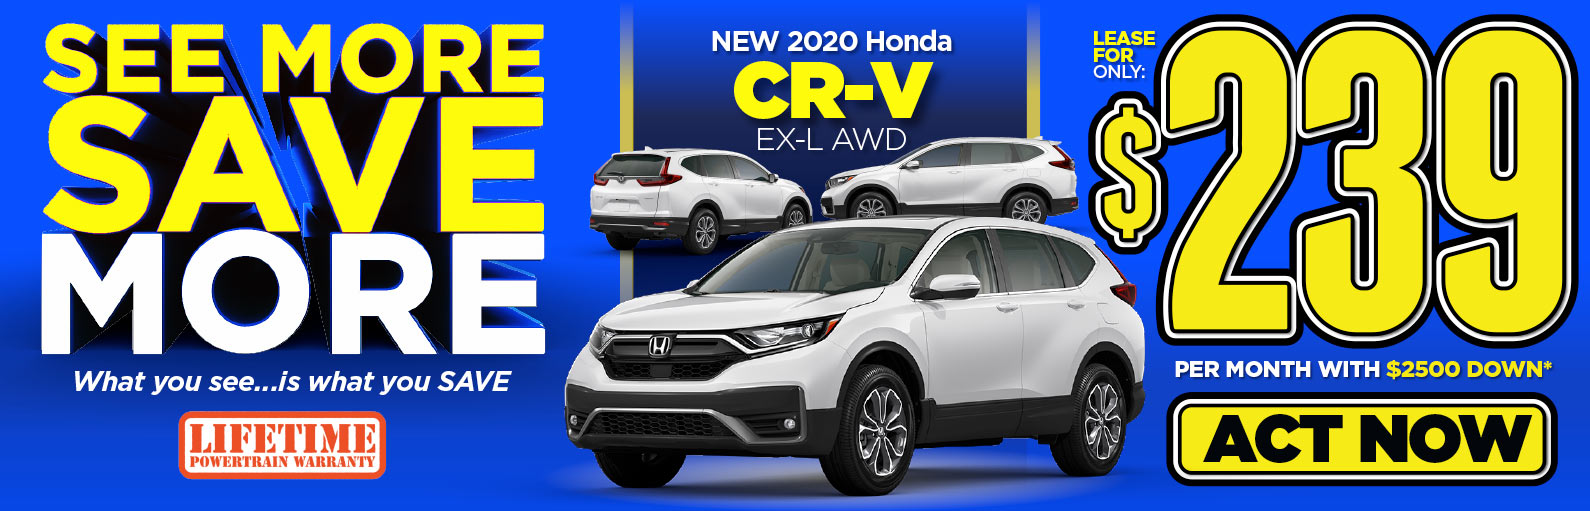 New 2020 Honda Civic LX Automatic lease for only $149/Mo.* - ACT NOW